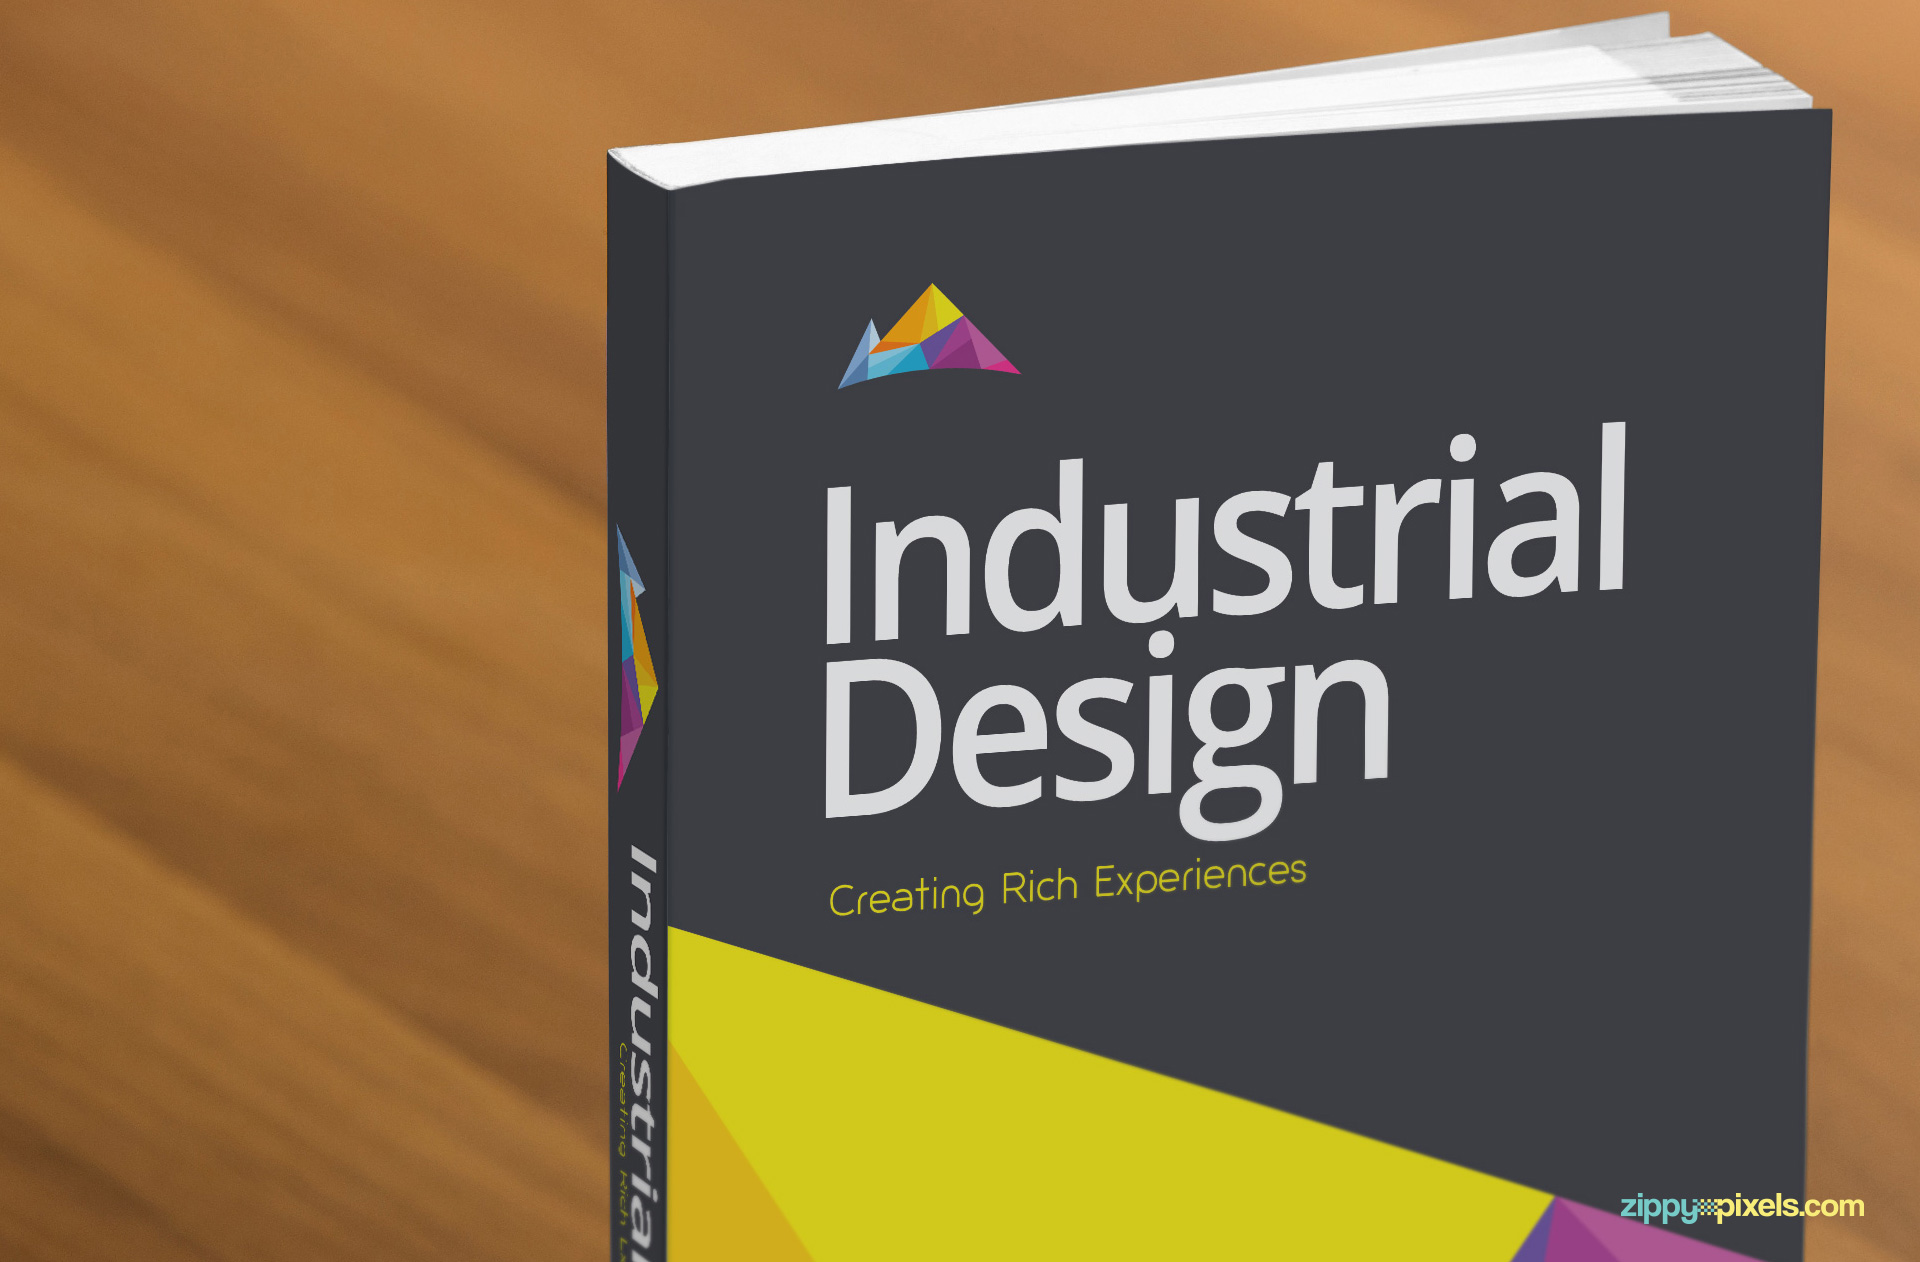 Book Cover Design Requirements : Free book cover mockup psd for and novel